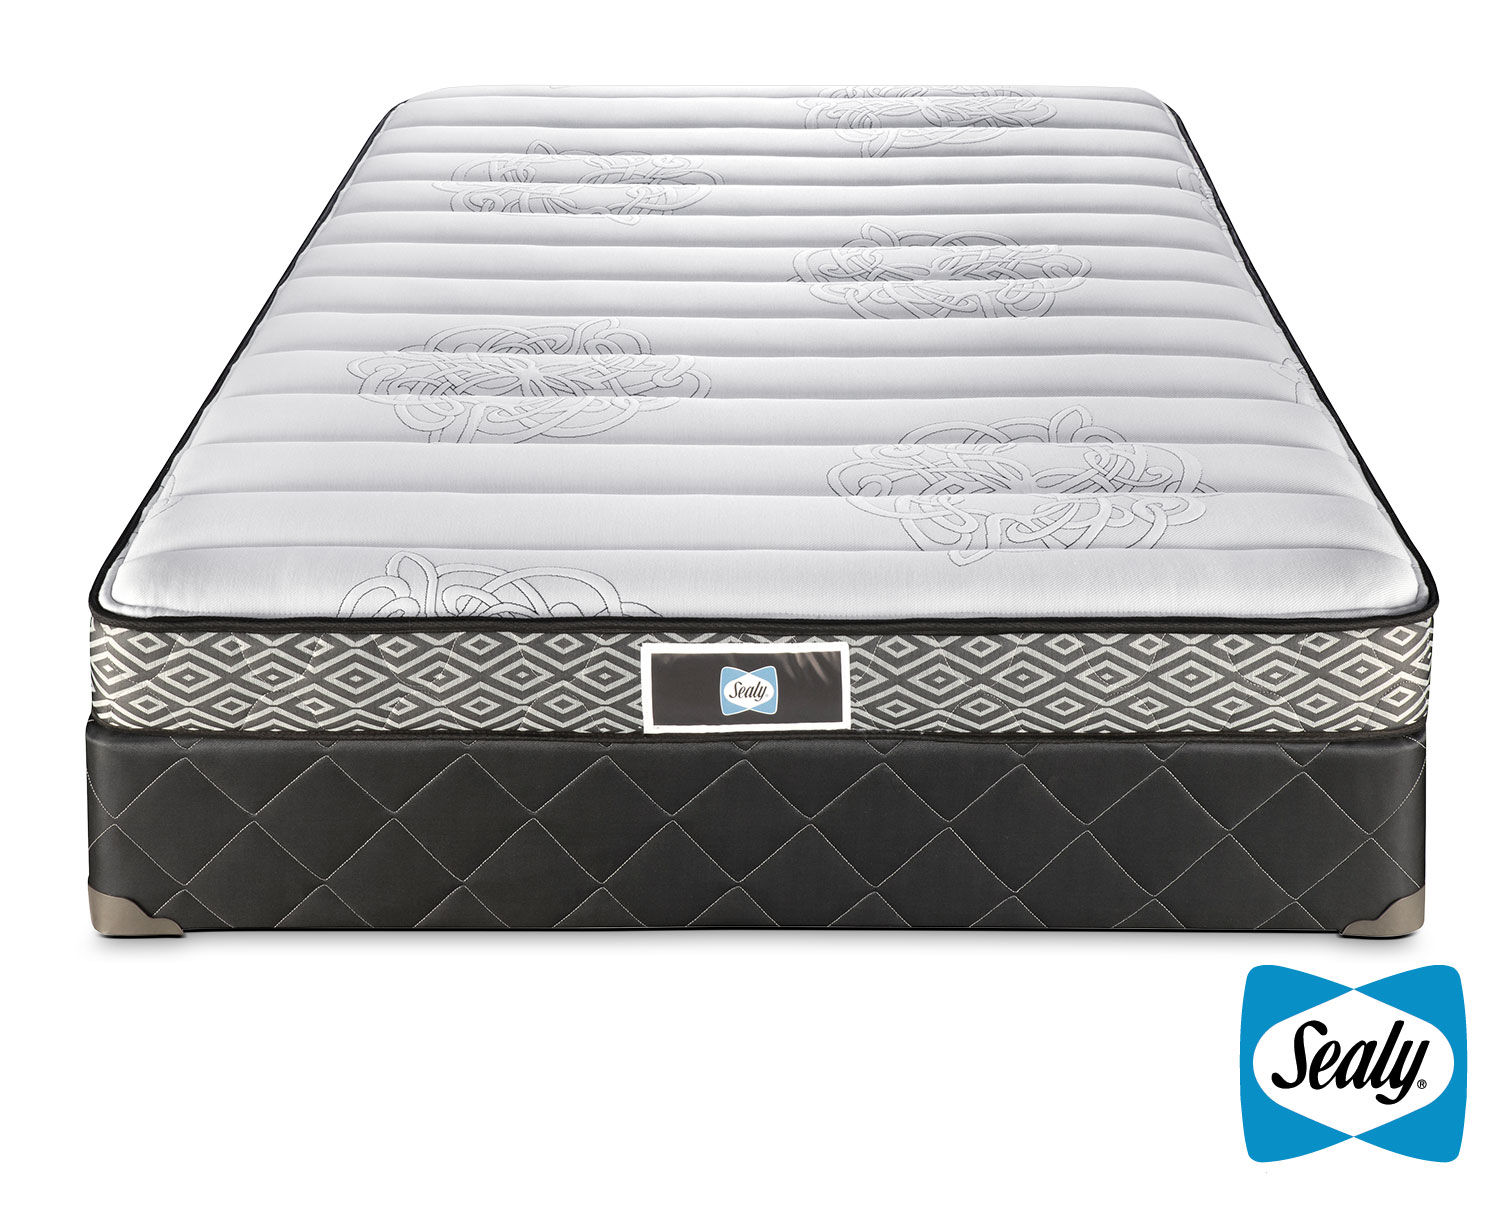 Sealy Glacier Firm Twin Mattress and Boxspring Set